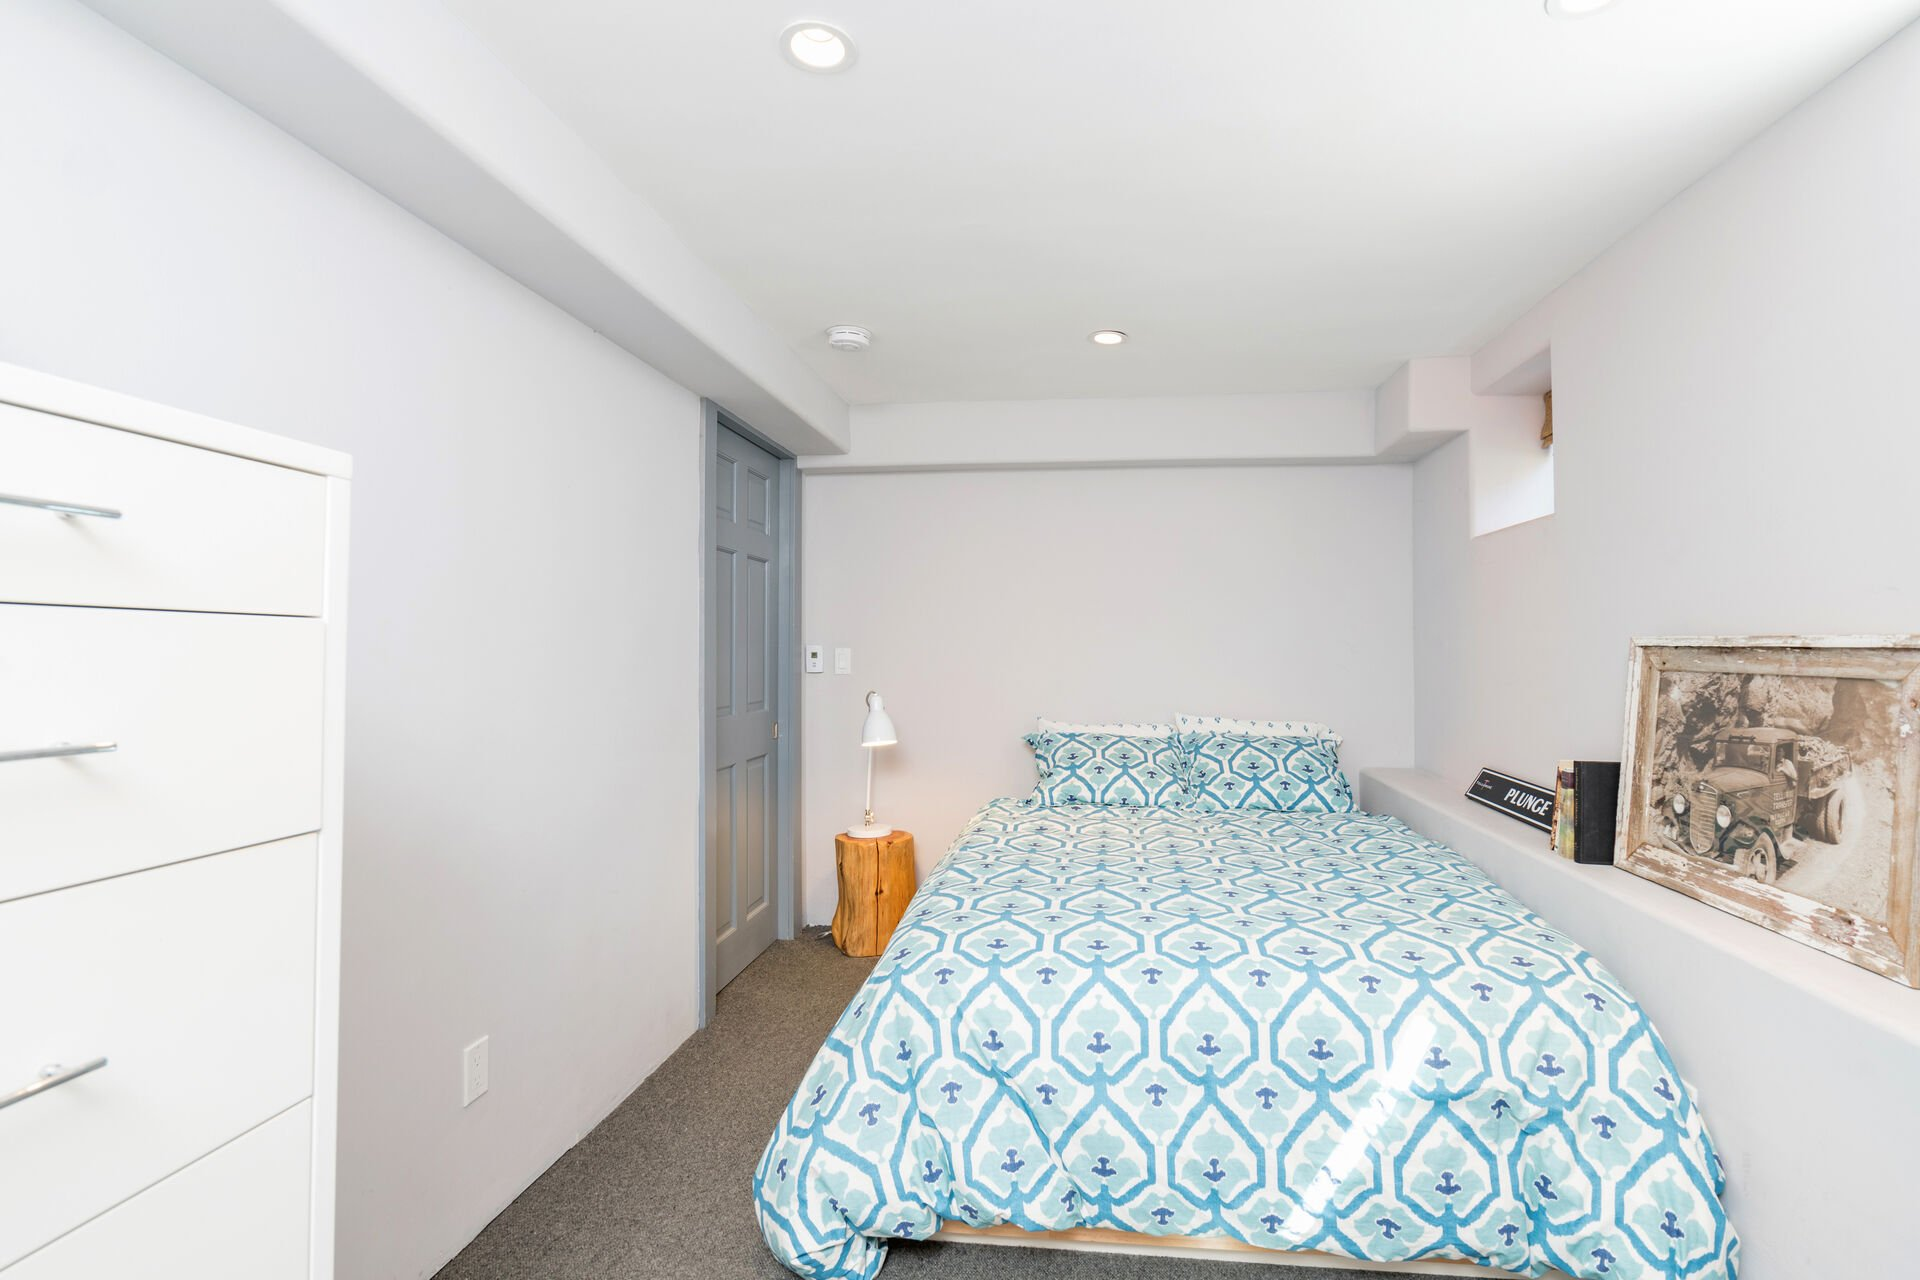 Bedroom with nearby nightstand.